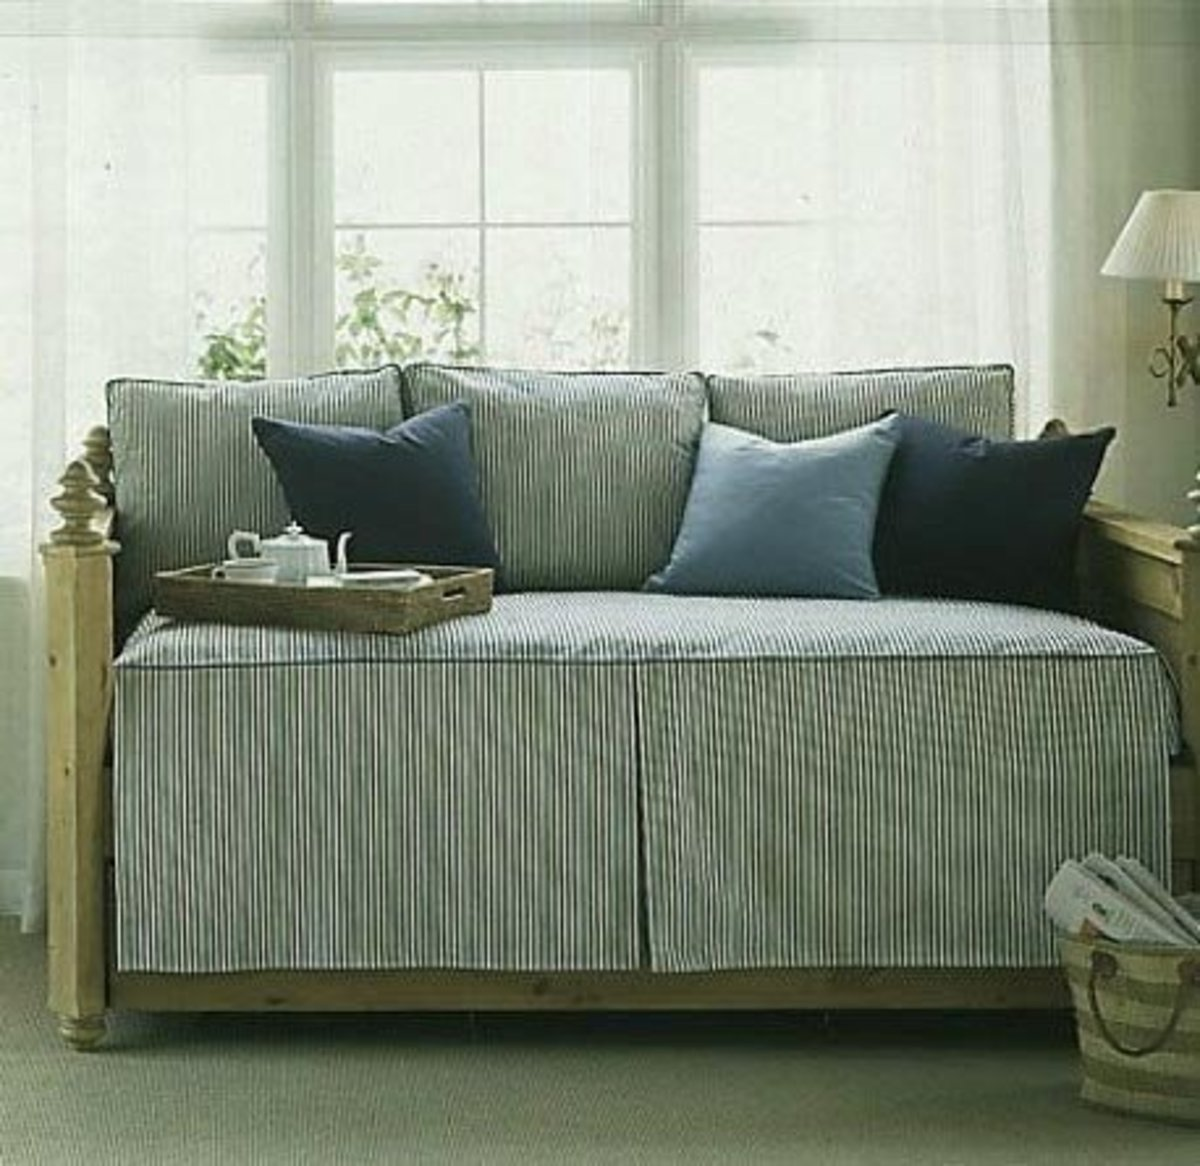 Daybed linen options in blue